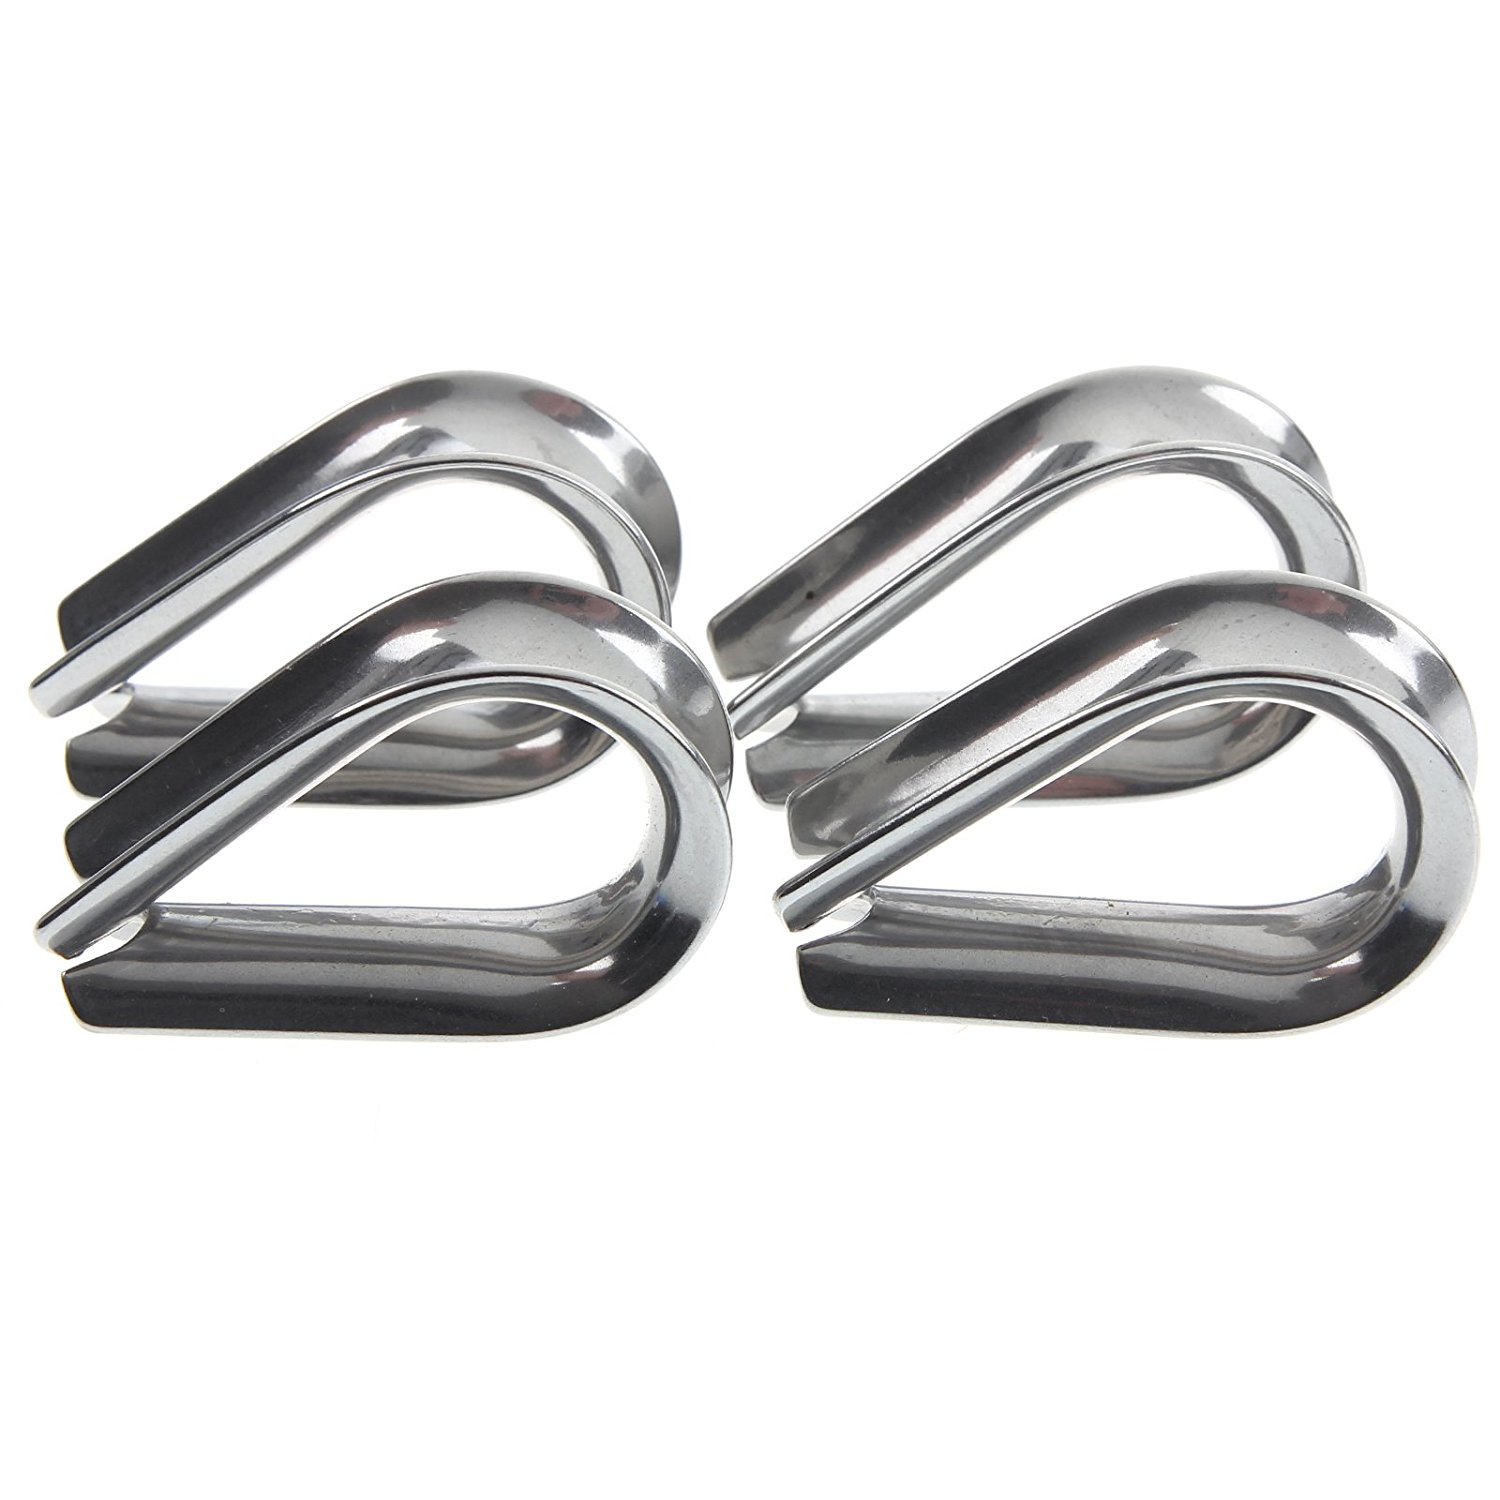 GTBL 4 X Stainless Steel - 3mm Wire Rope Loop Rope Thimbles